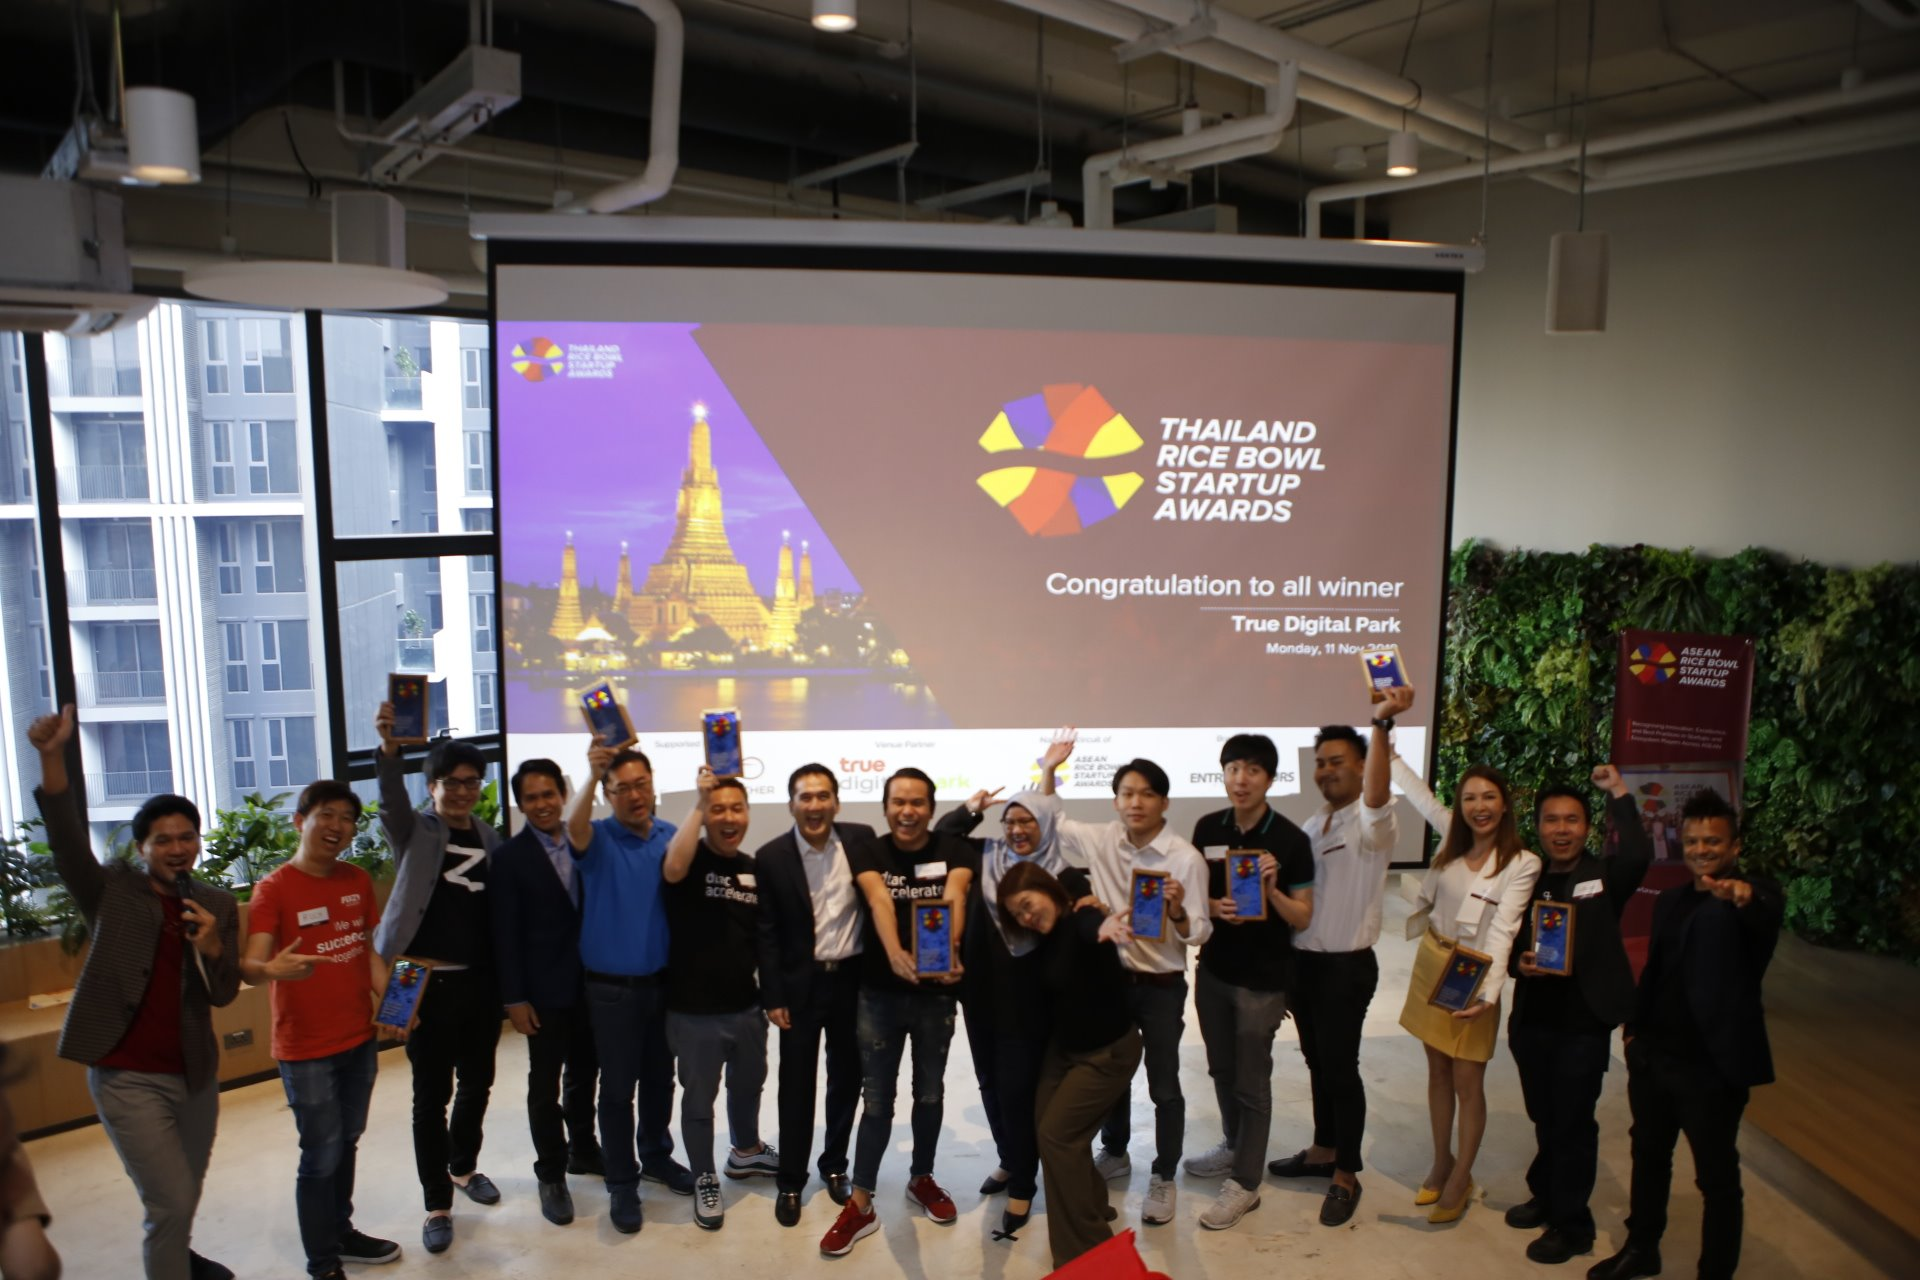 2019 Thailand Rice Bowl Startup Awards